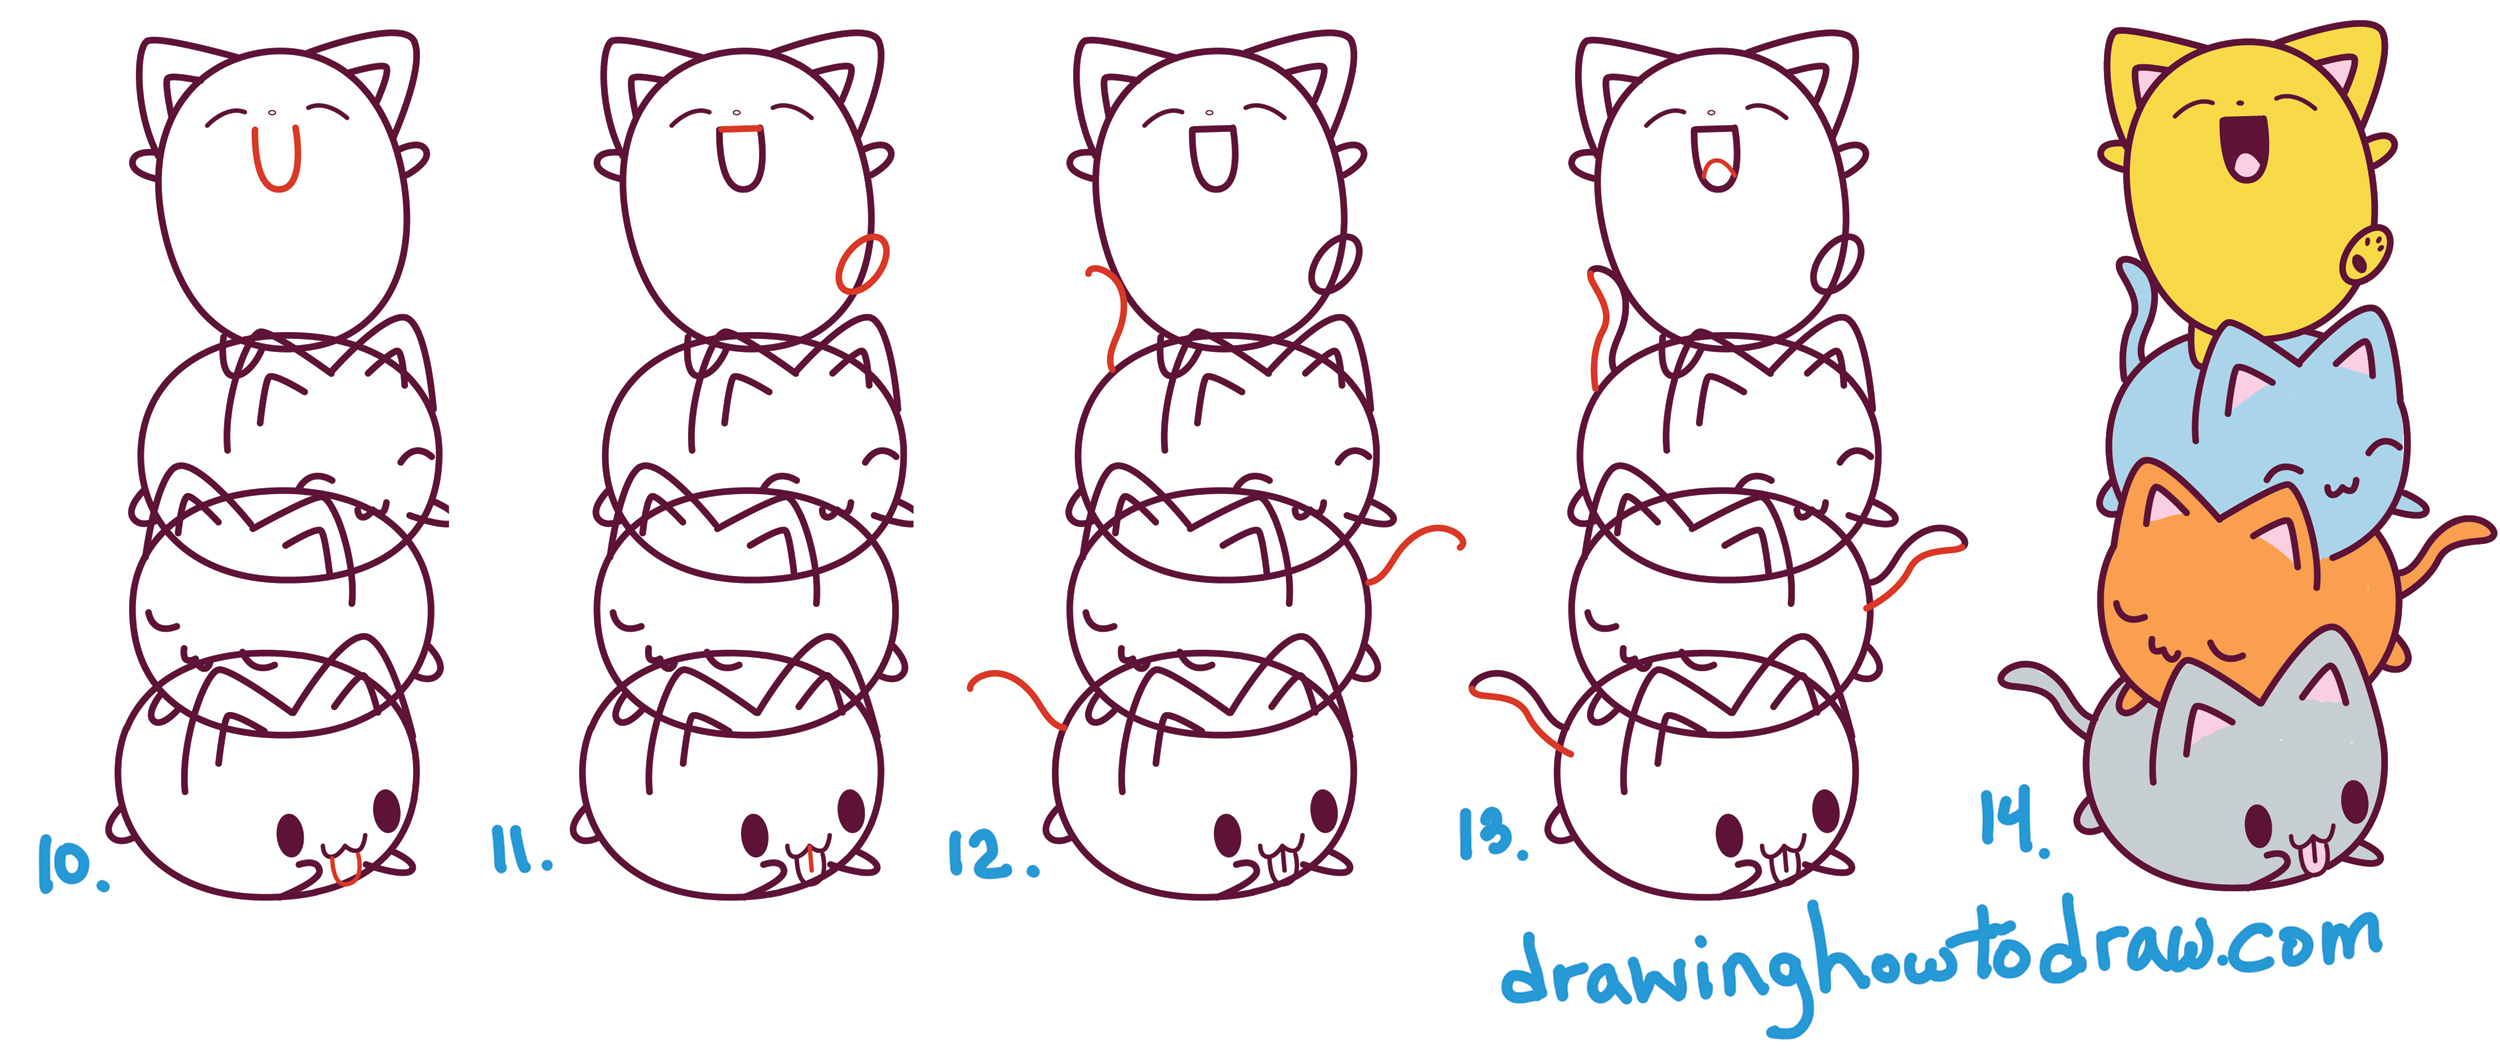 2500x1050 How To Draw Cute Kawaii Cats Stacked On Top Of Each Other